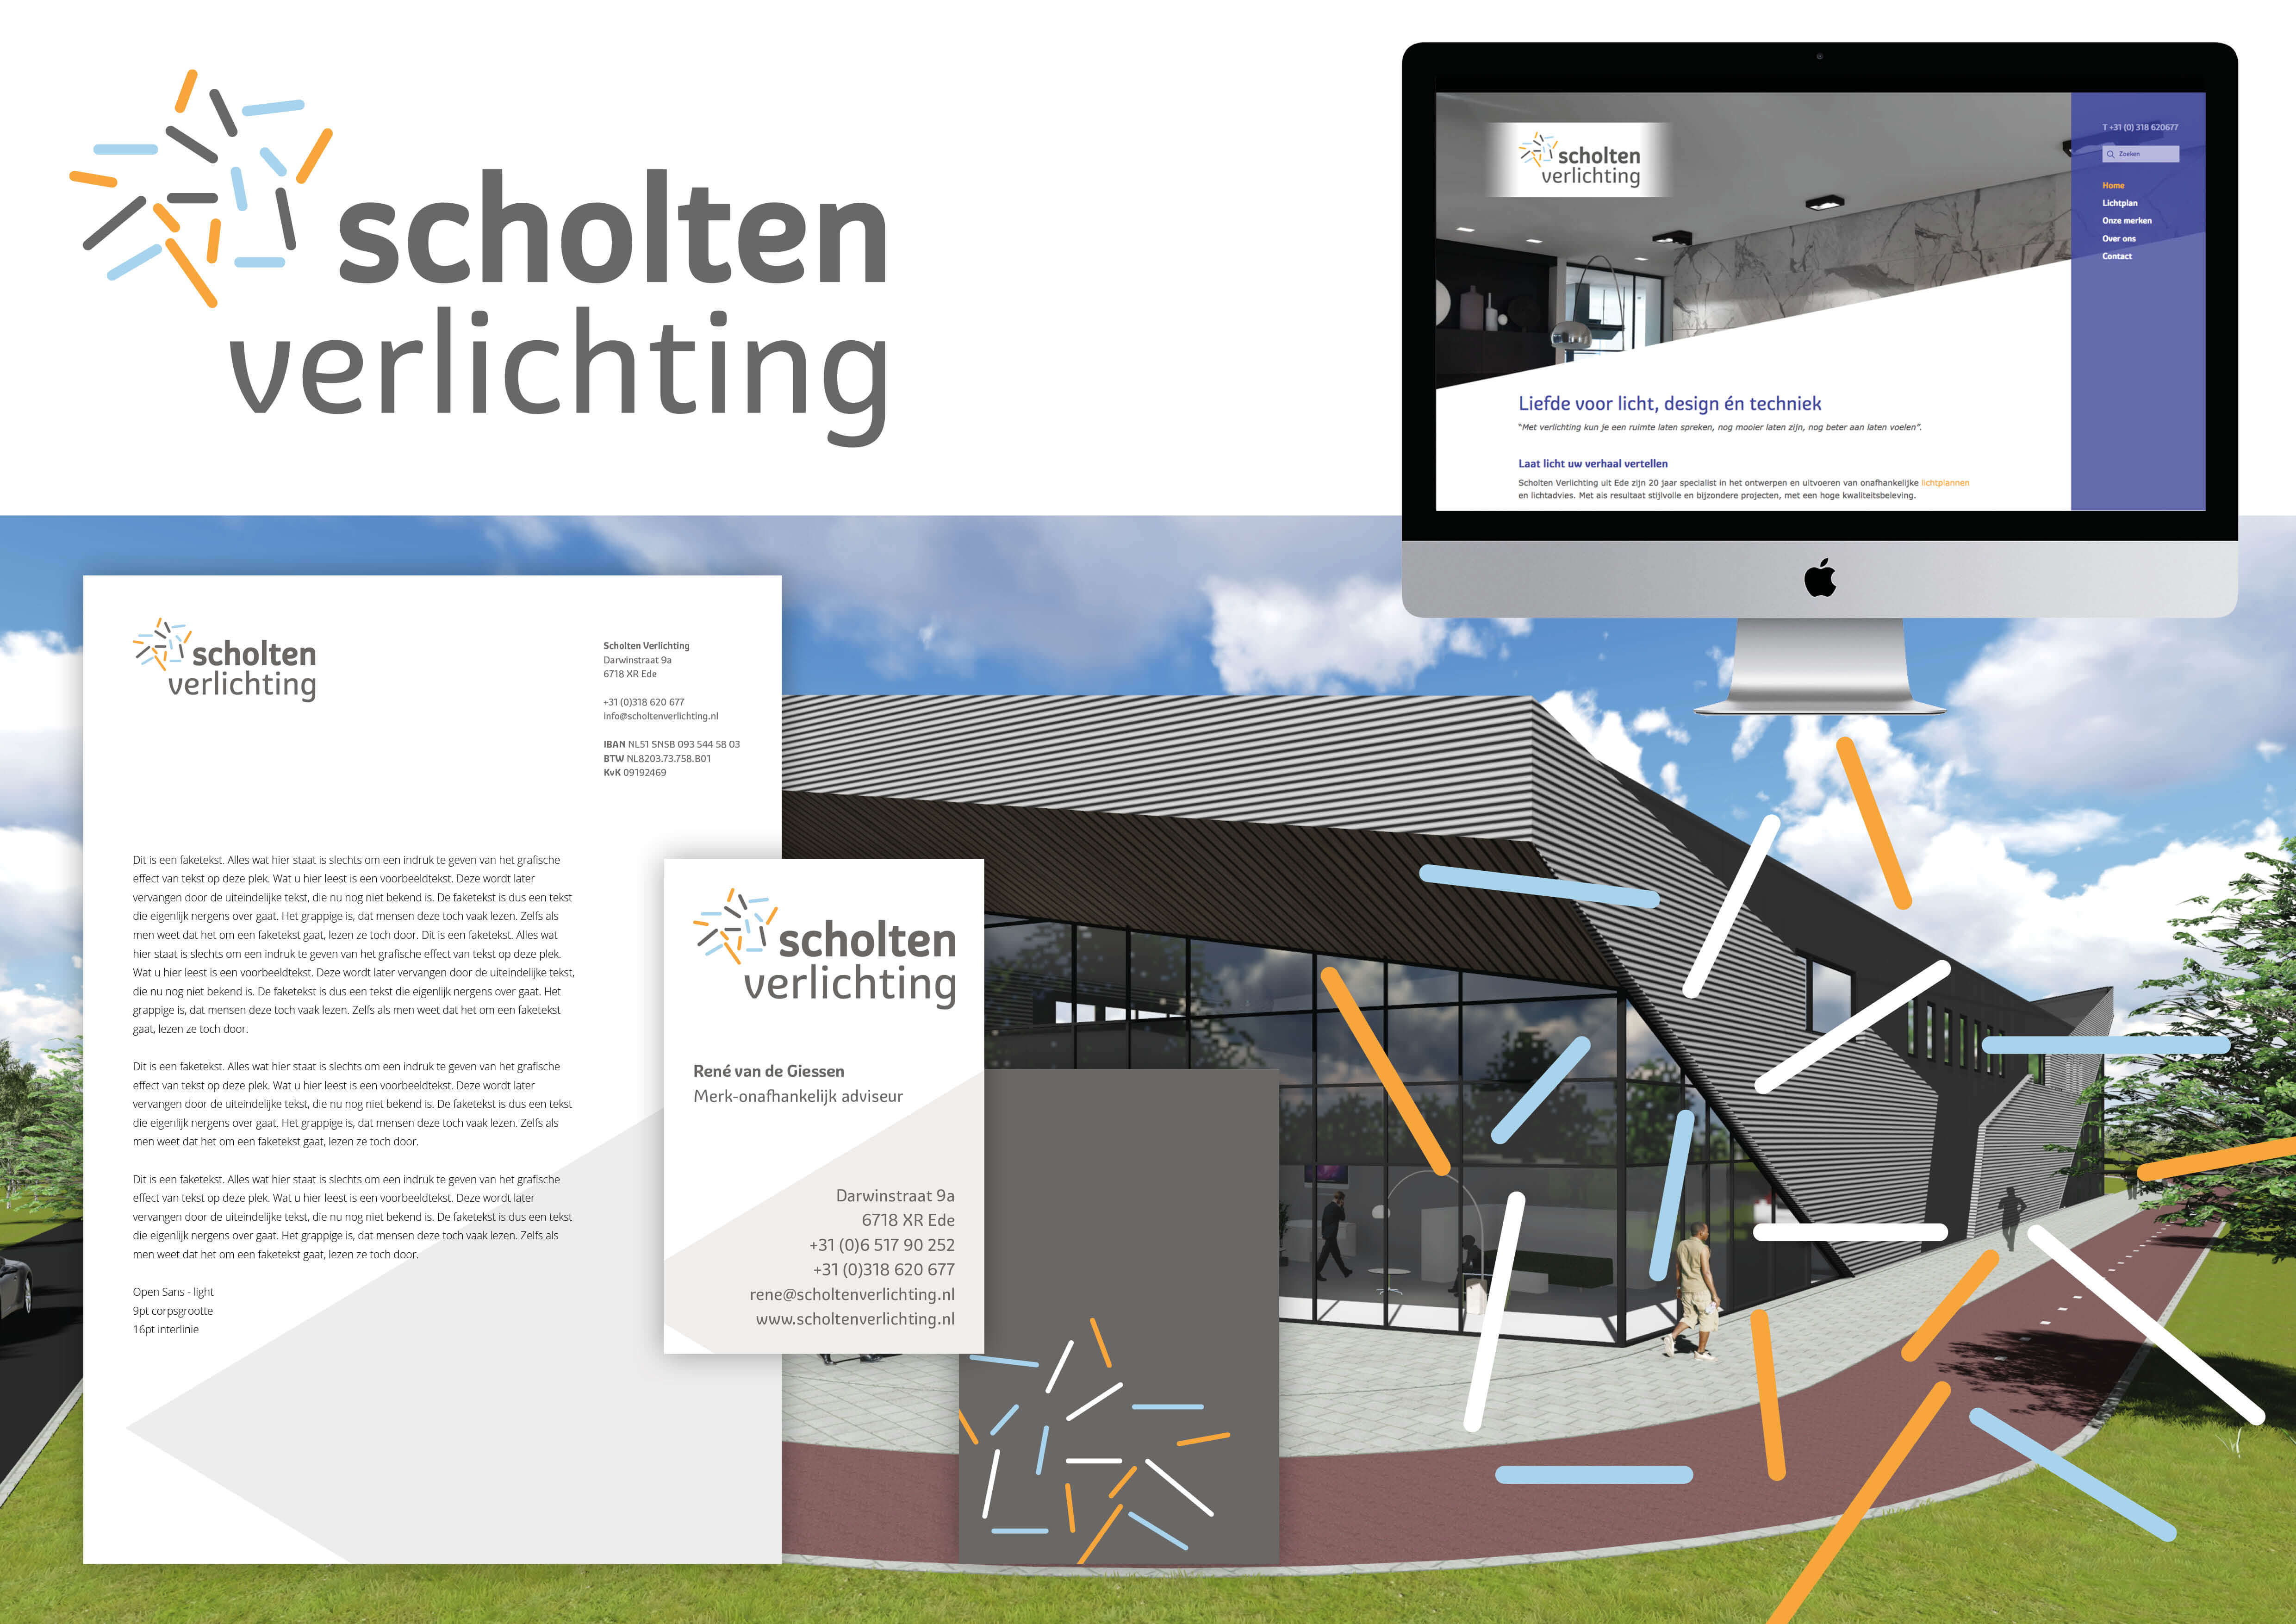 https://youngwise.nl/wp-content/uploads/2017/08/Scholten-collage-A3-DEF.jpg